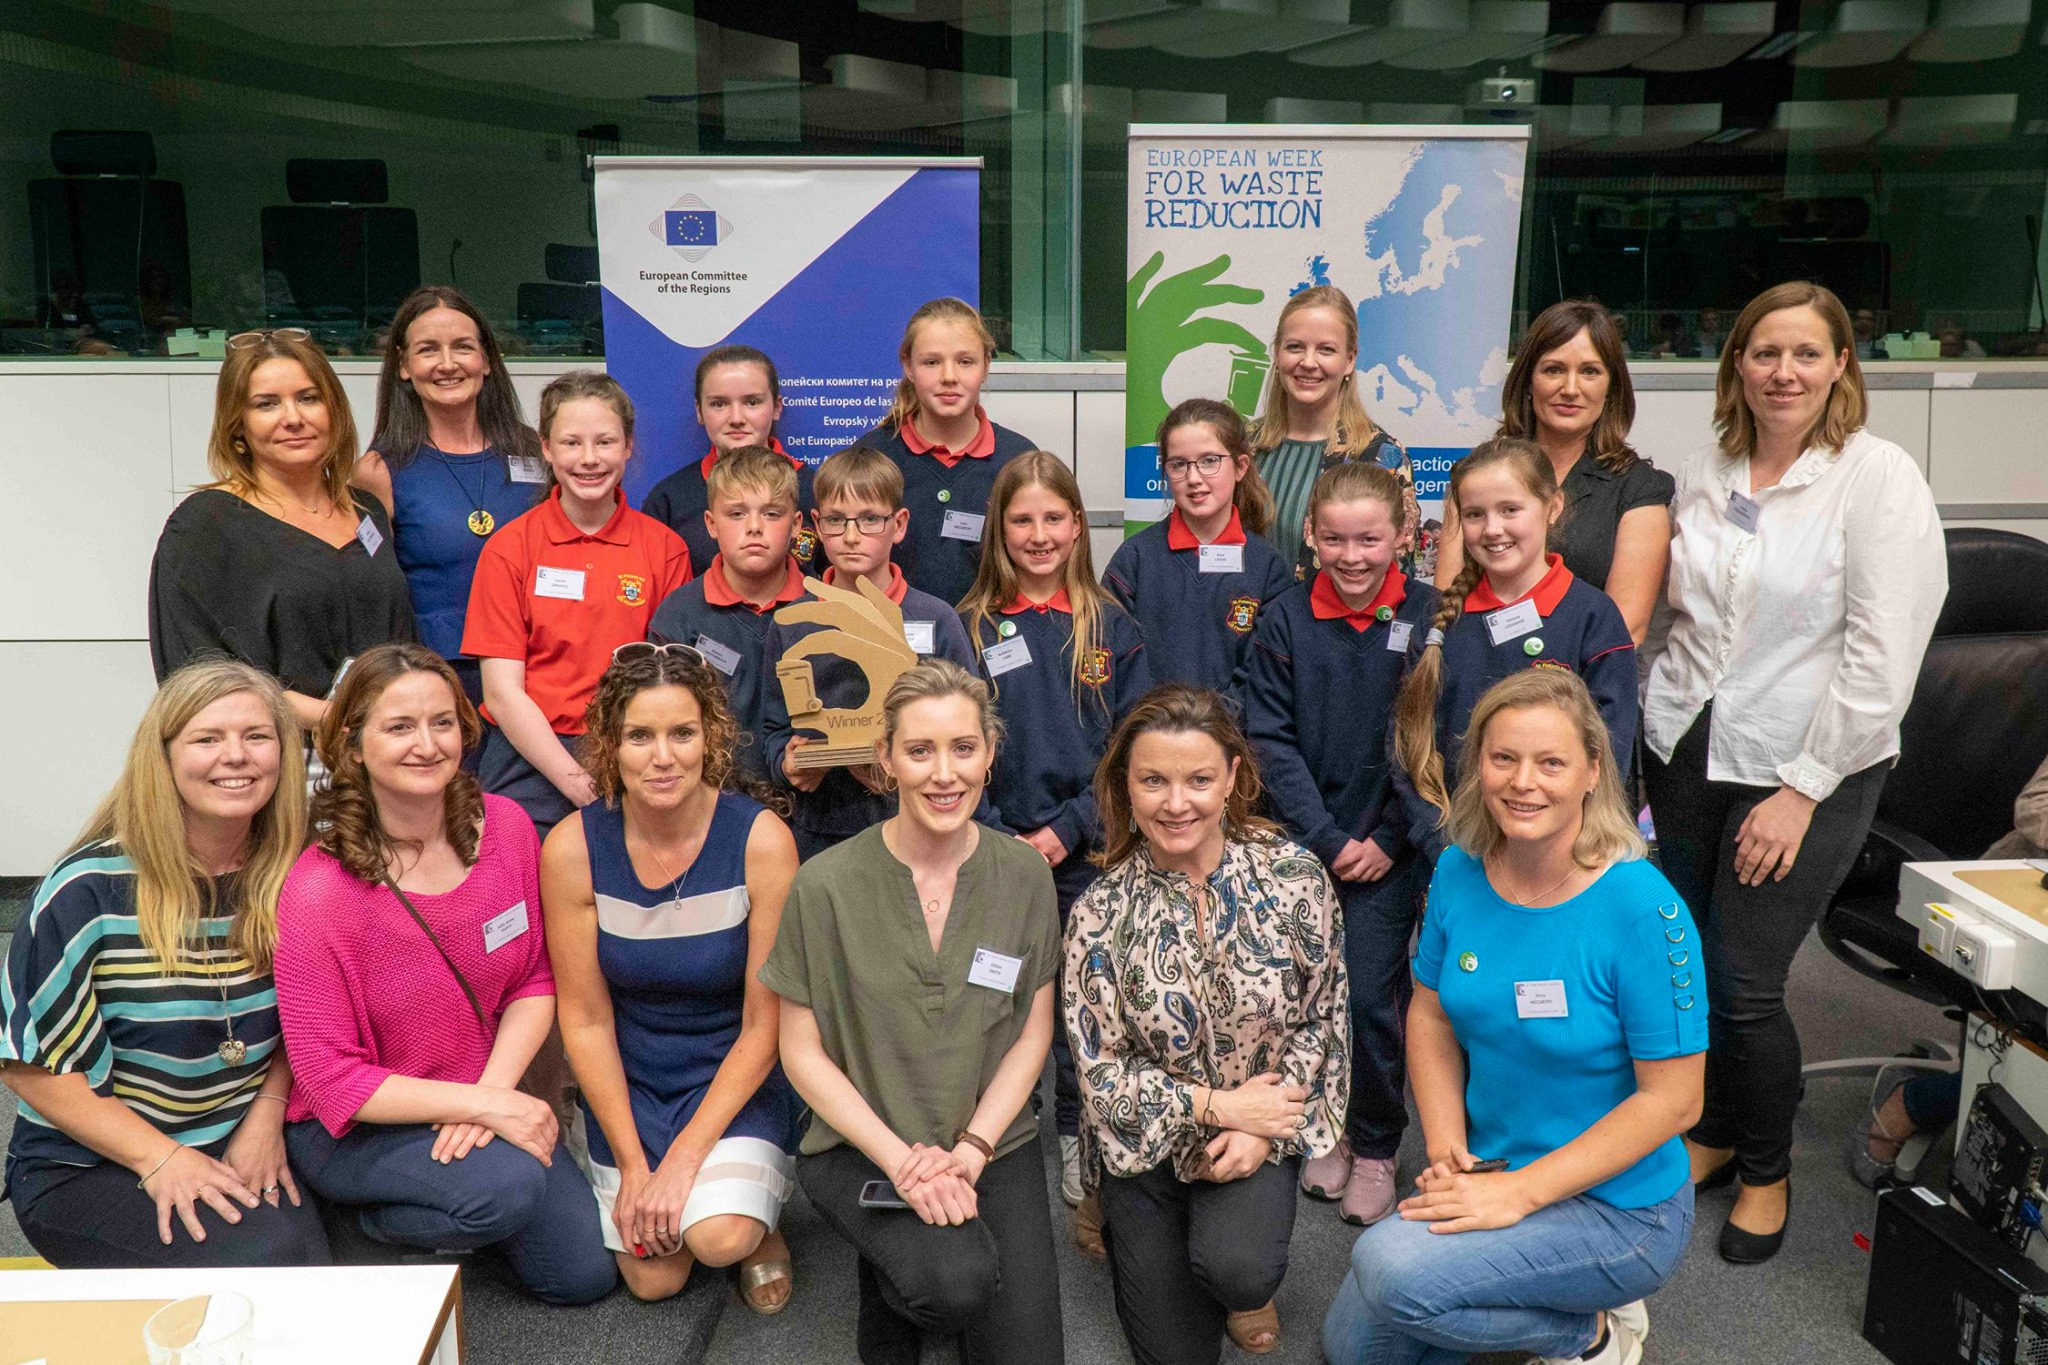 Ireland, for the Second Year Running Takes Home Prestigious Prize at Ceremony which Kicked off EU Green Week